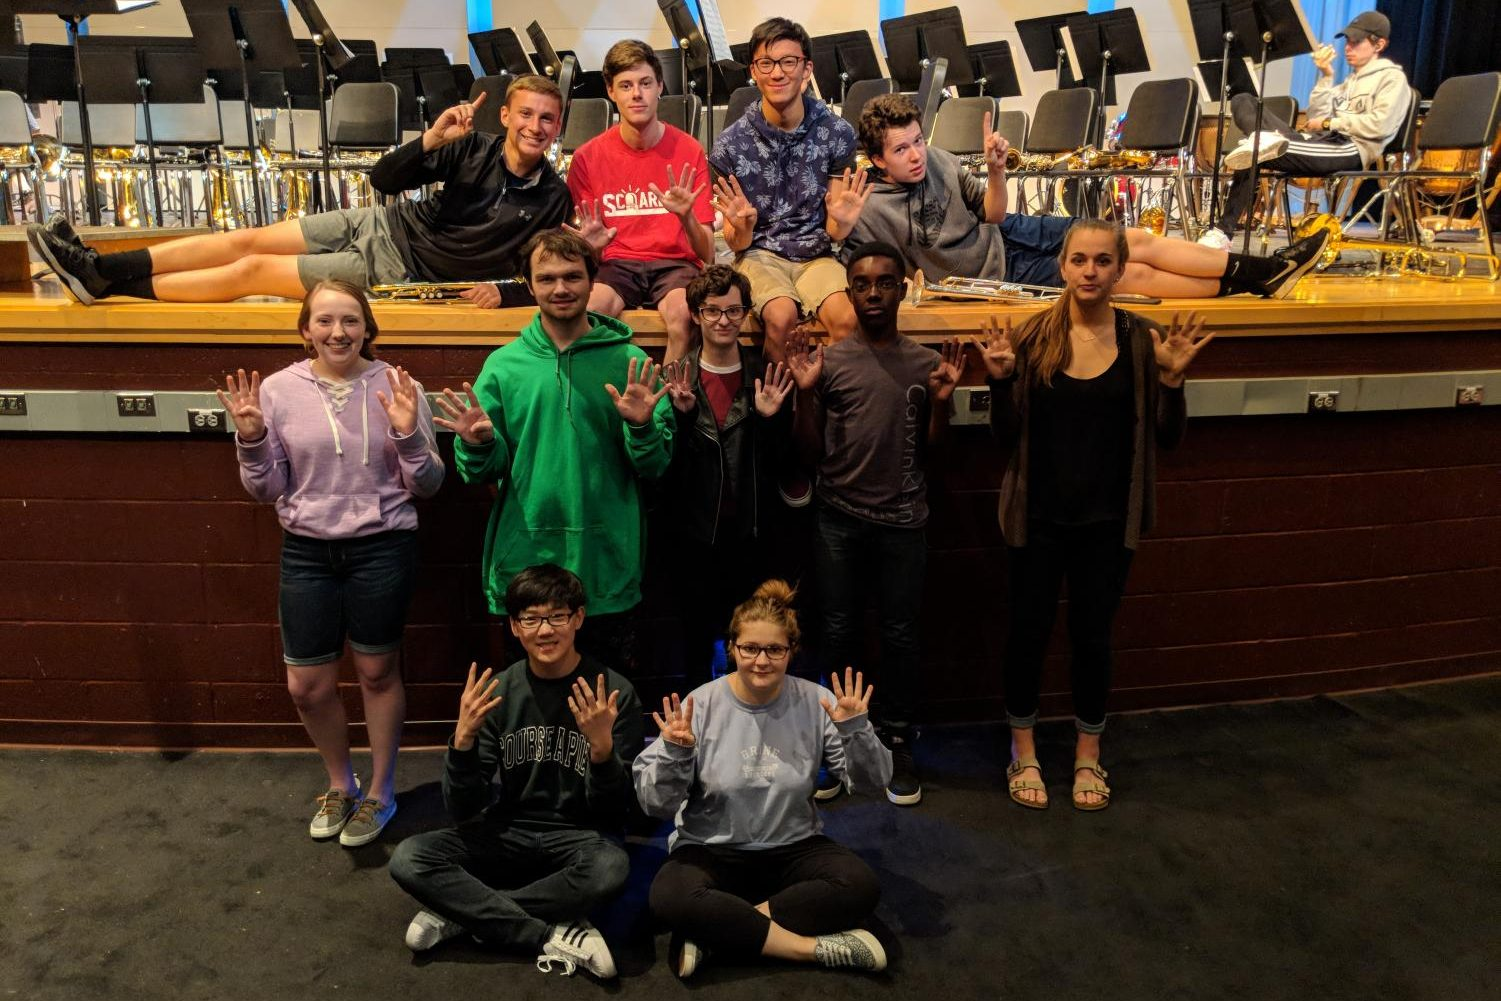 Andrew Nash, Matt Molineau, Richard Zhang, Evan Schalon, Mallory Safsten, Alex Pare, Erin Doyle, Charles Quansah, Olivia Weinel, Daniel Roberson, and Allie Hudson pose in front of the stage during symphonic band practice